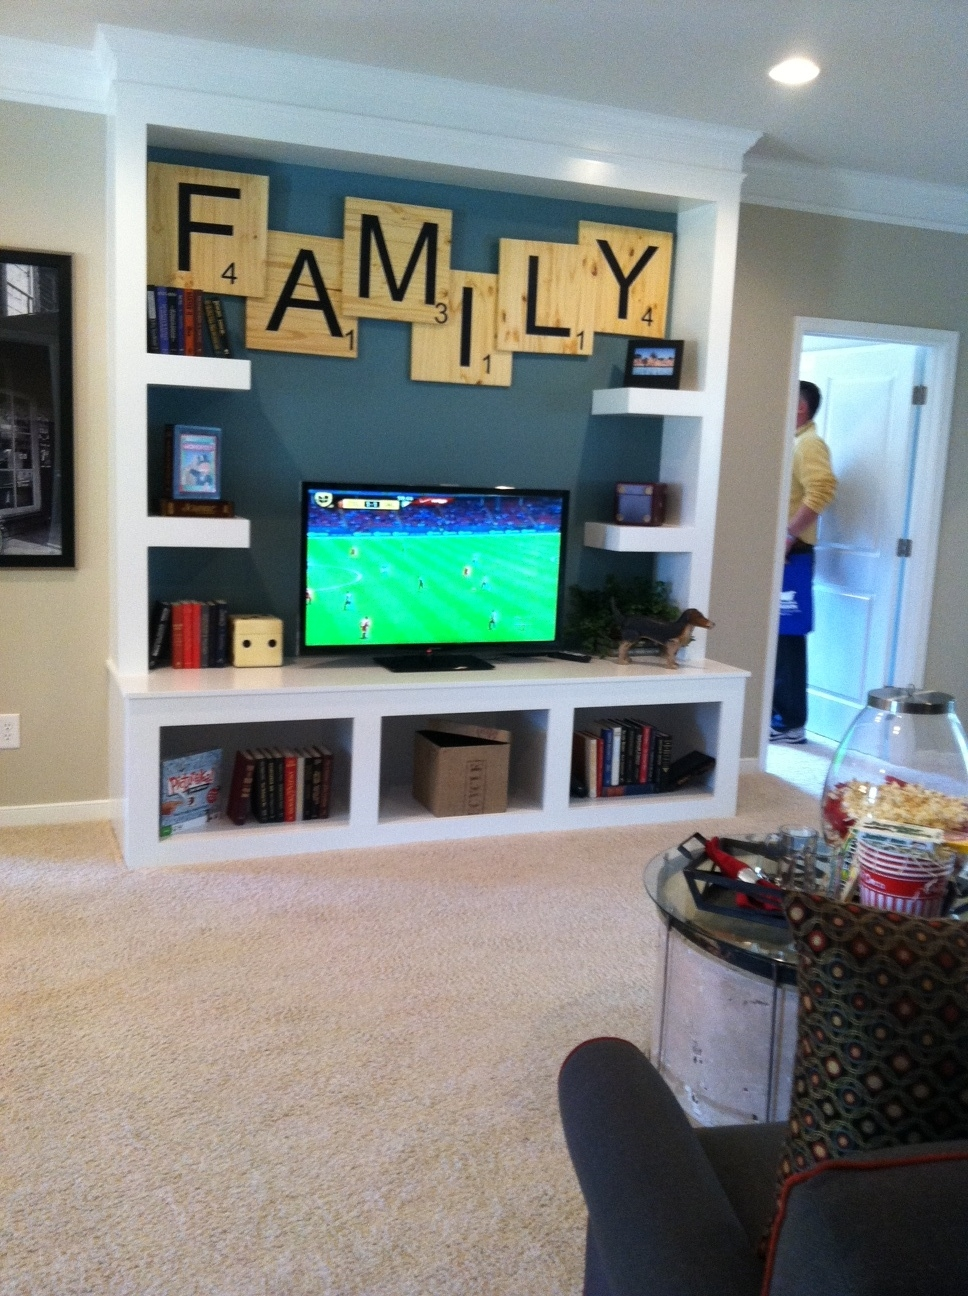 Her late night cravings richmond homearama trends for How to decorate game room